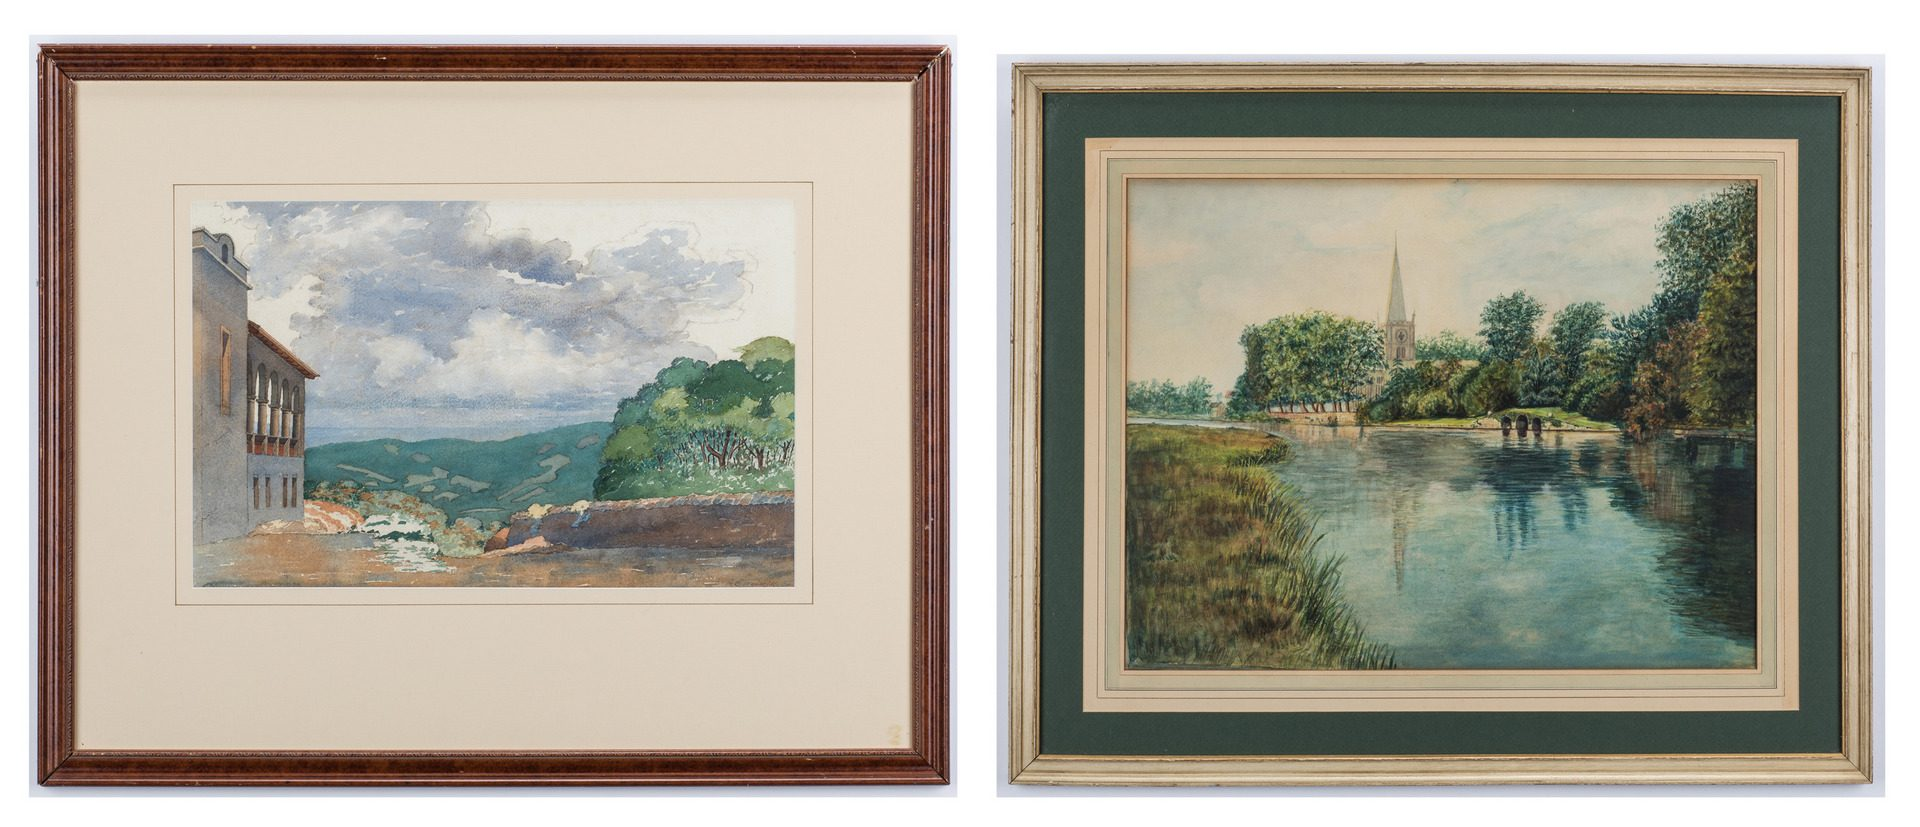 Lot 370: 2 American Scenic Watercolor Paintings, incl. Alexander B. Trowbridge